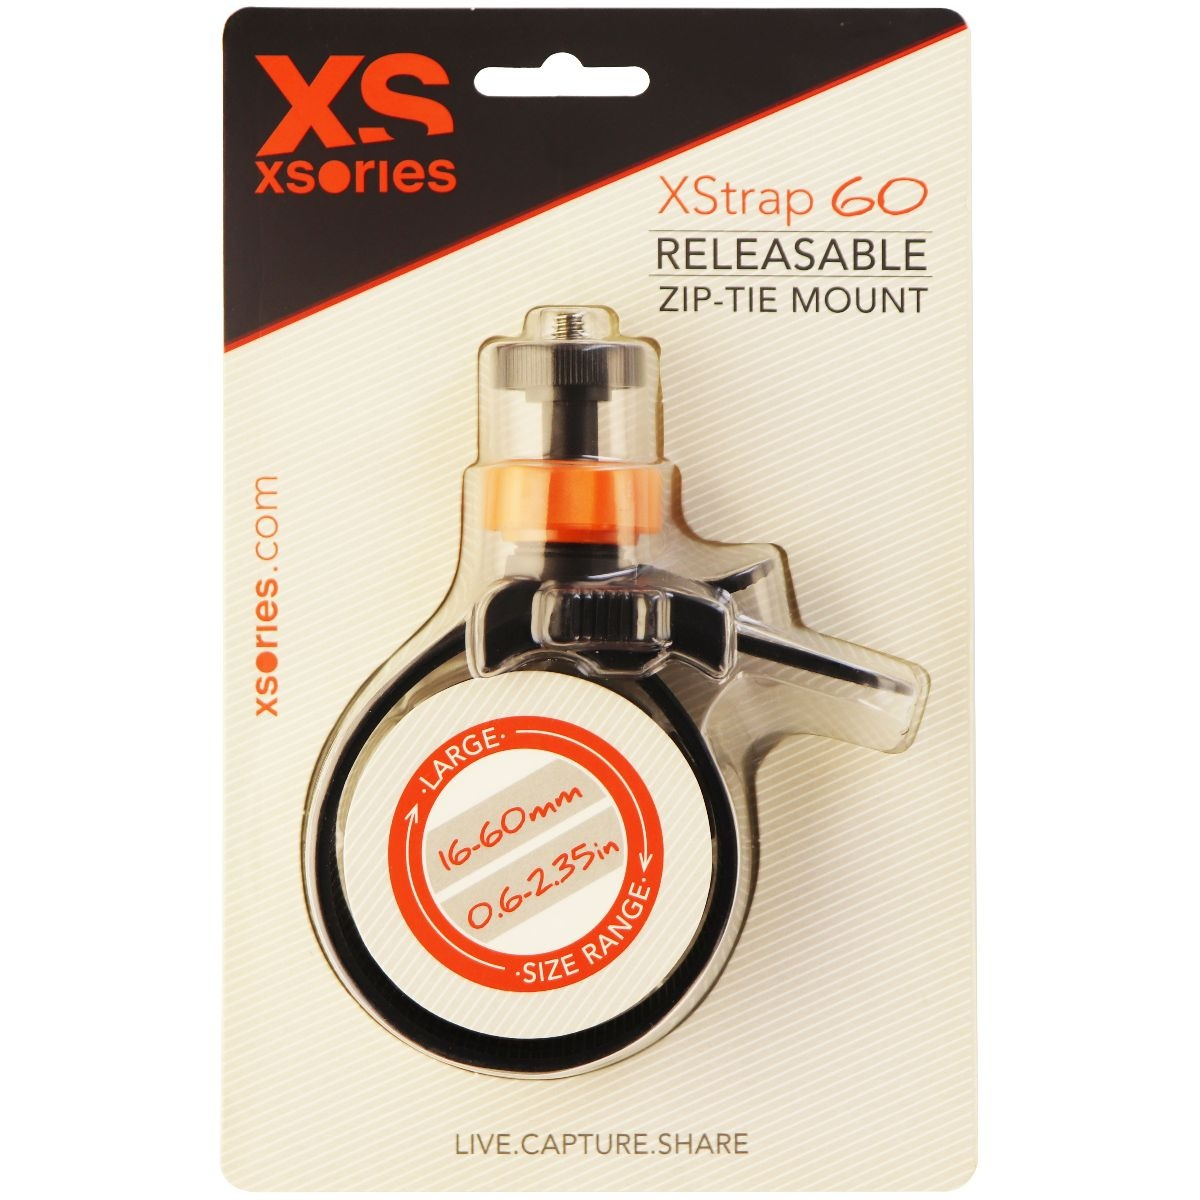 XSories XStrap, Releasable Zip-Tie Compact Camera Mount Fits All GoPro